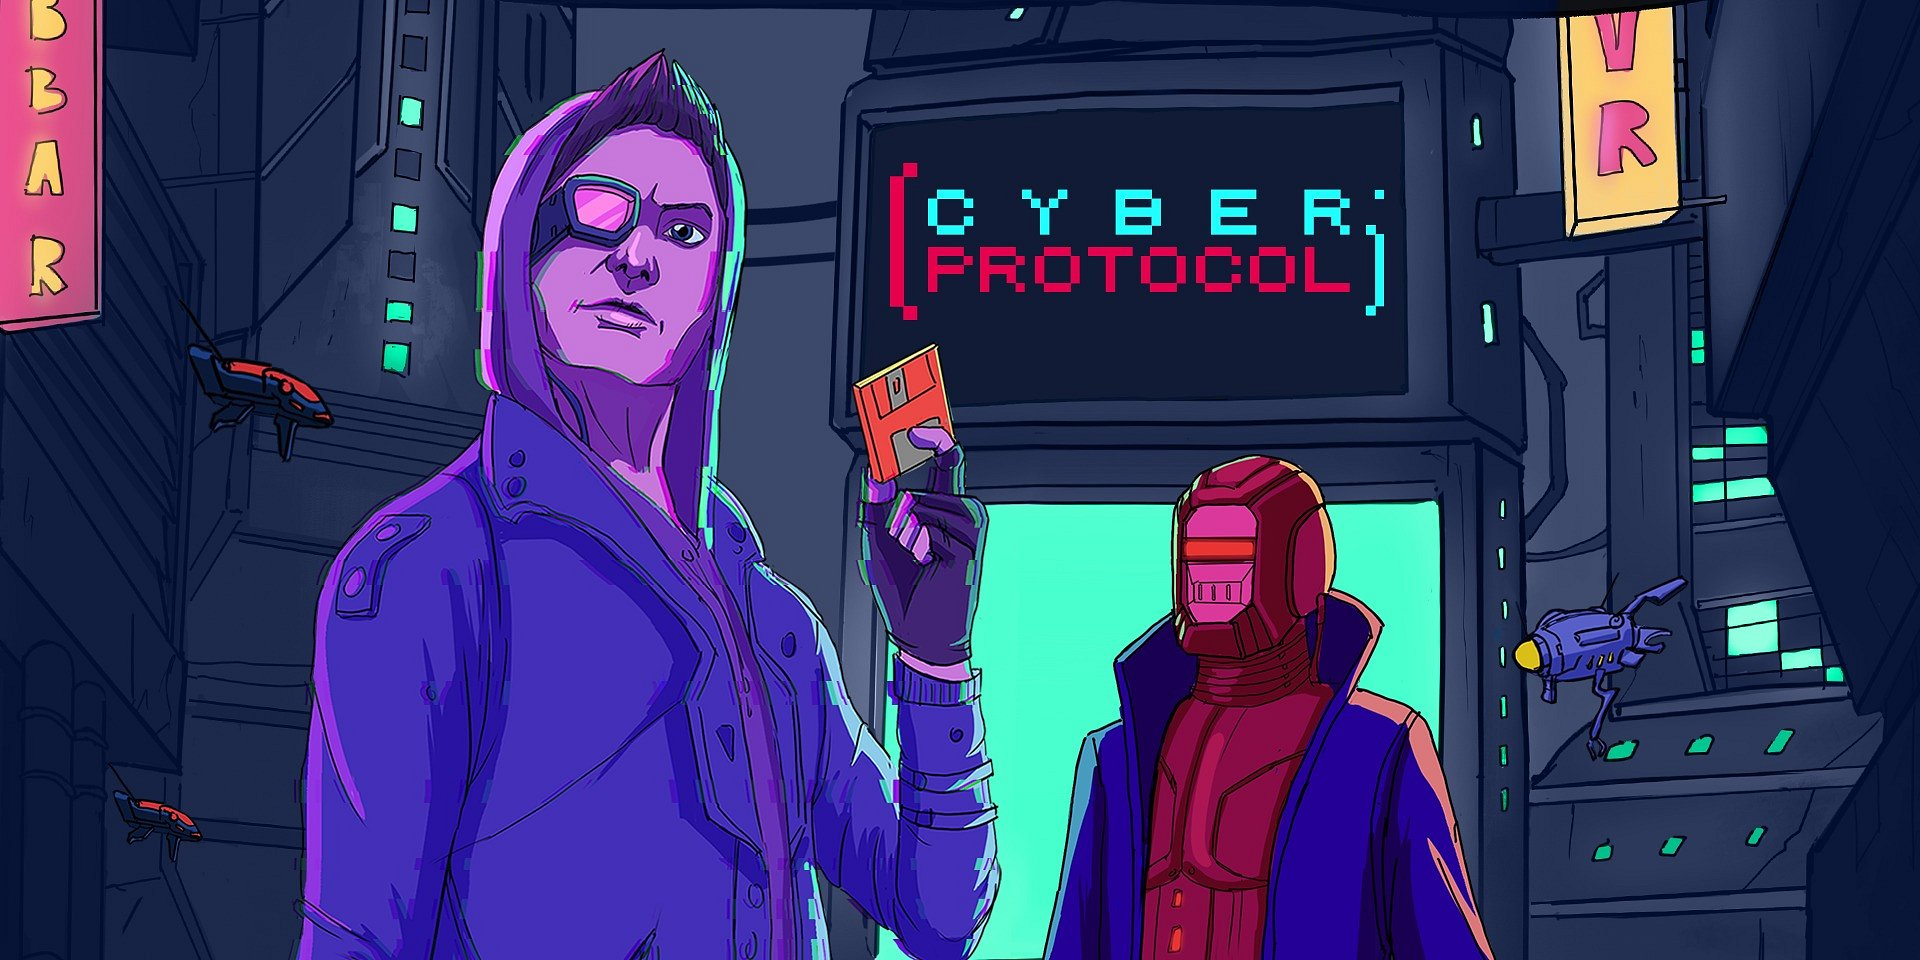 Become better than Hackerman in arcade hacking game – Cyber Protocol exclusive for Nintendo Switch